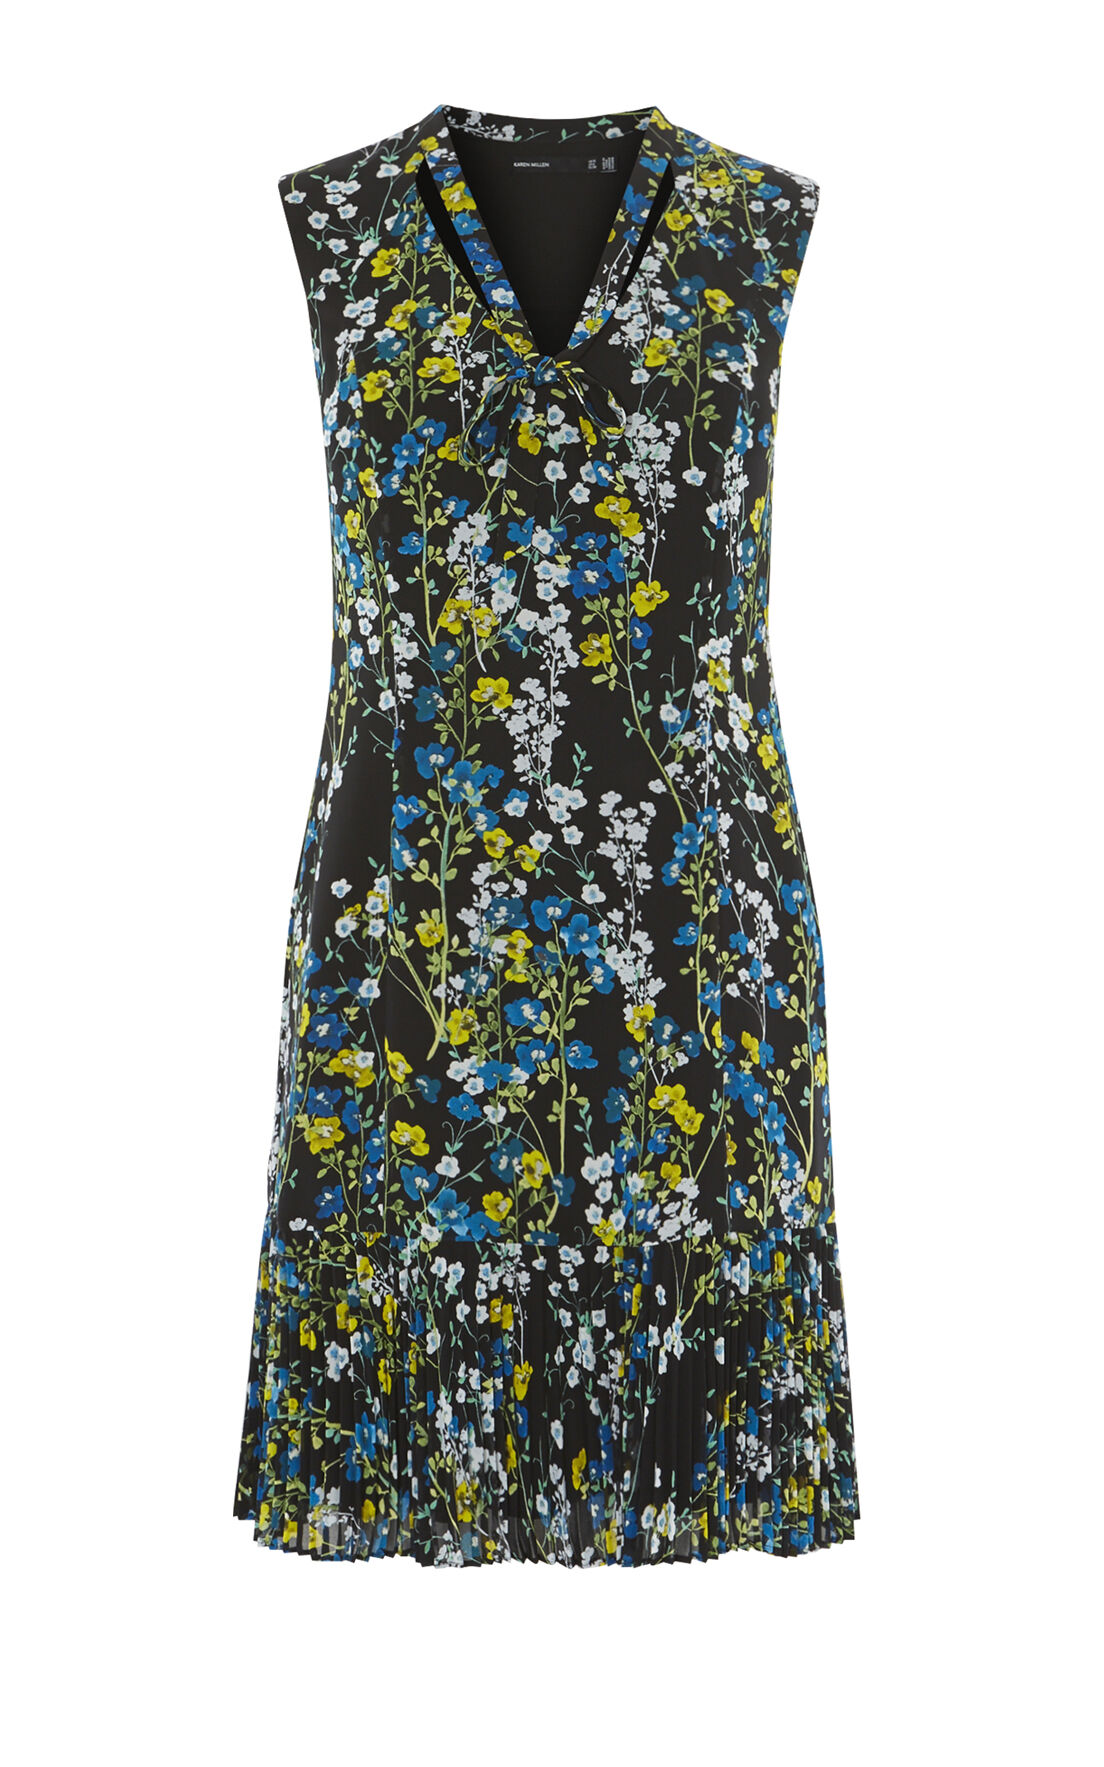 Karen Millen, TIE-NECK FLORAL DRESS Black/Multi 0